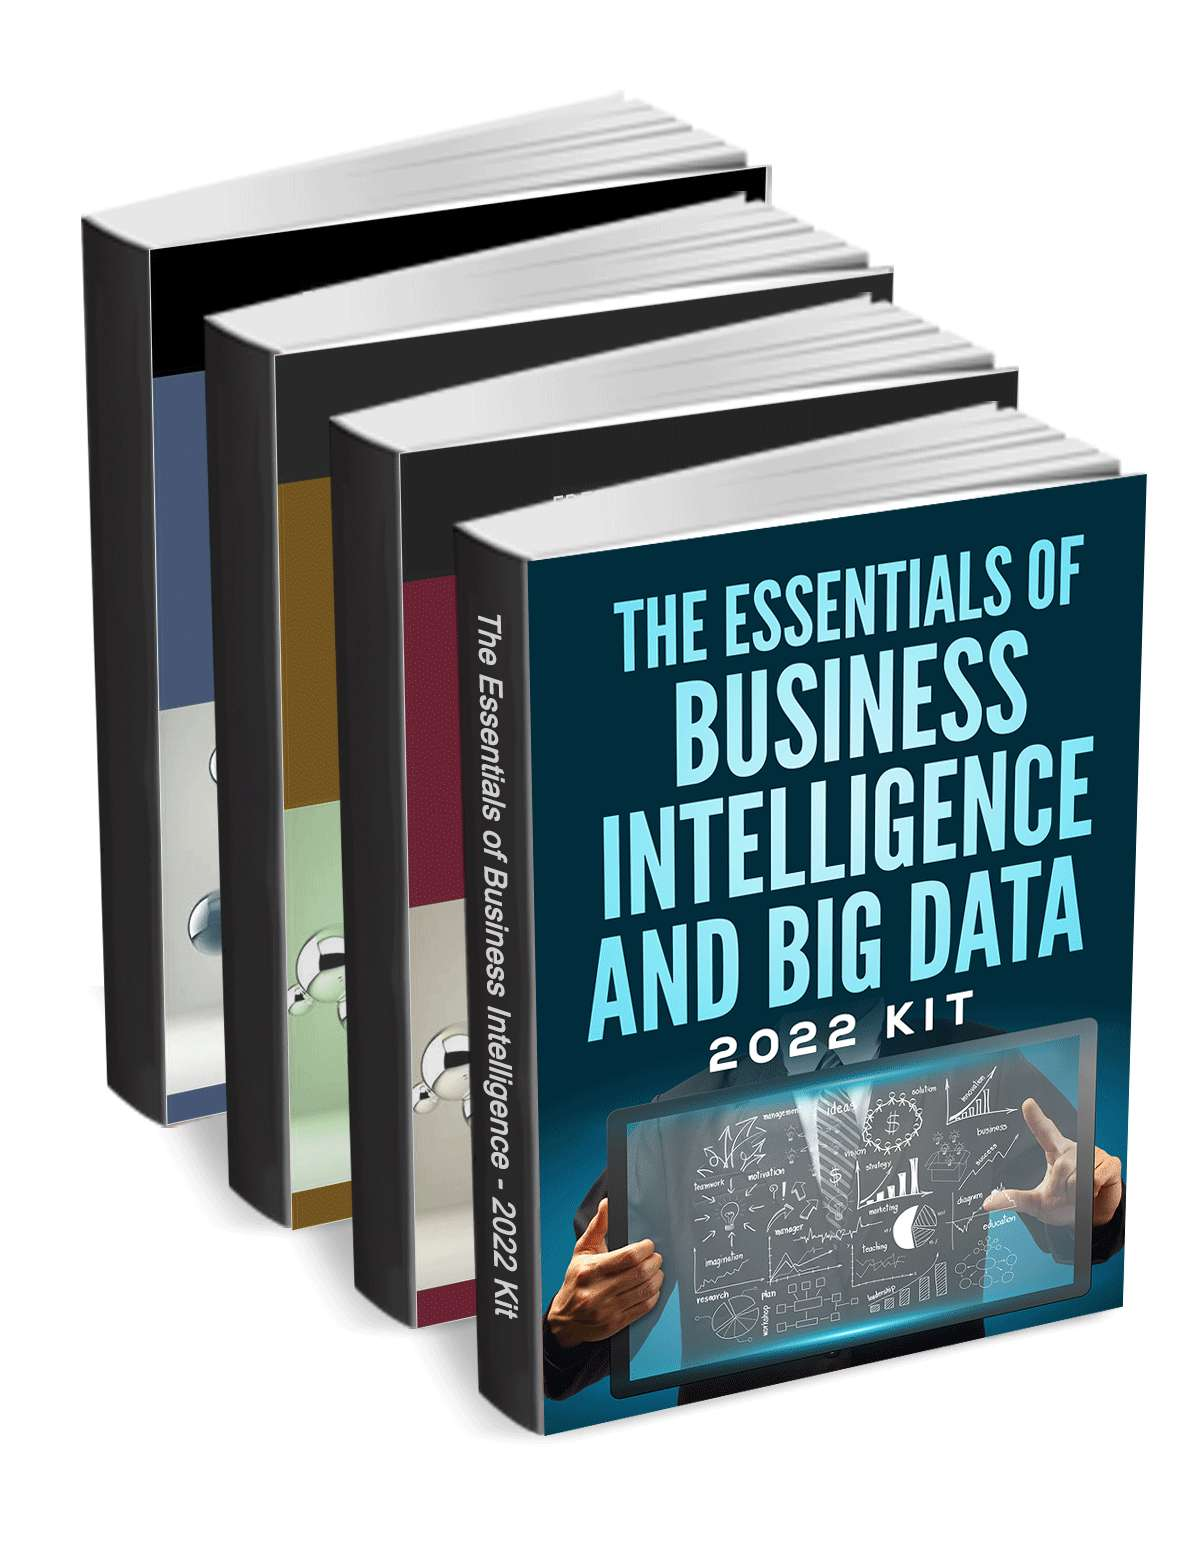 The Essentials of Business Intelligence and Big Data - 2020 Kit